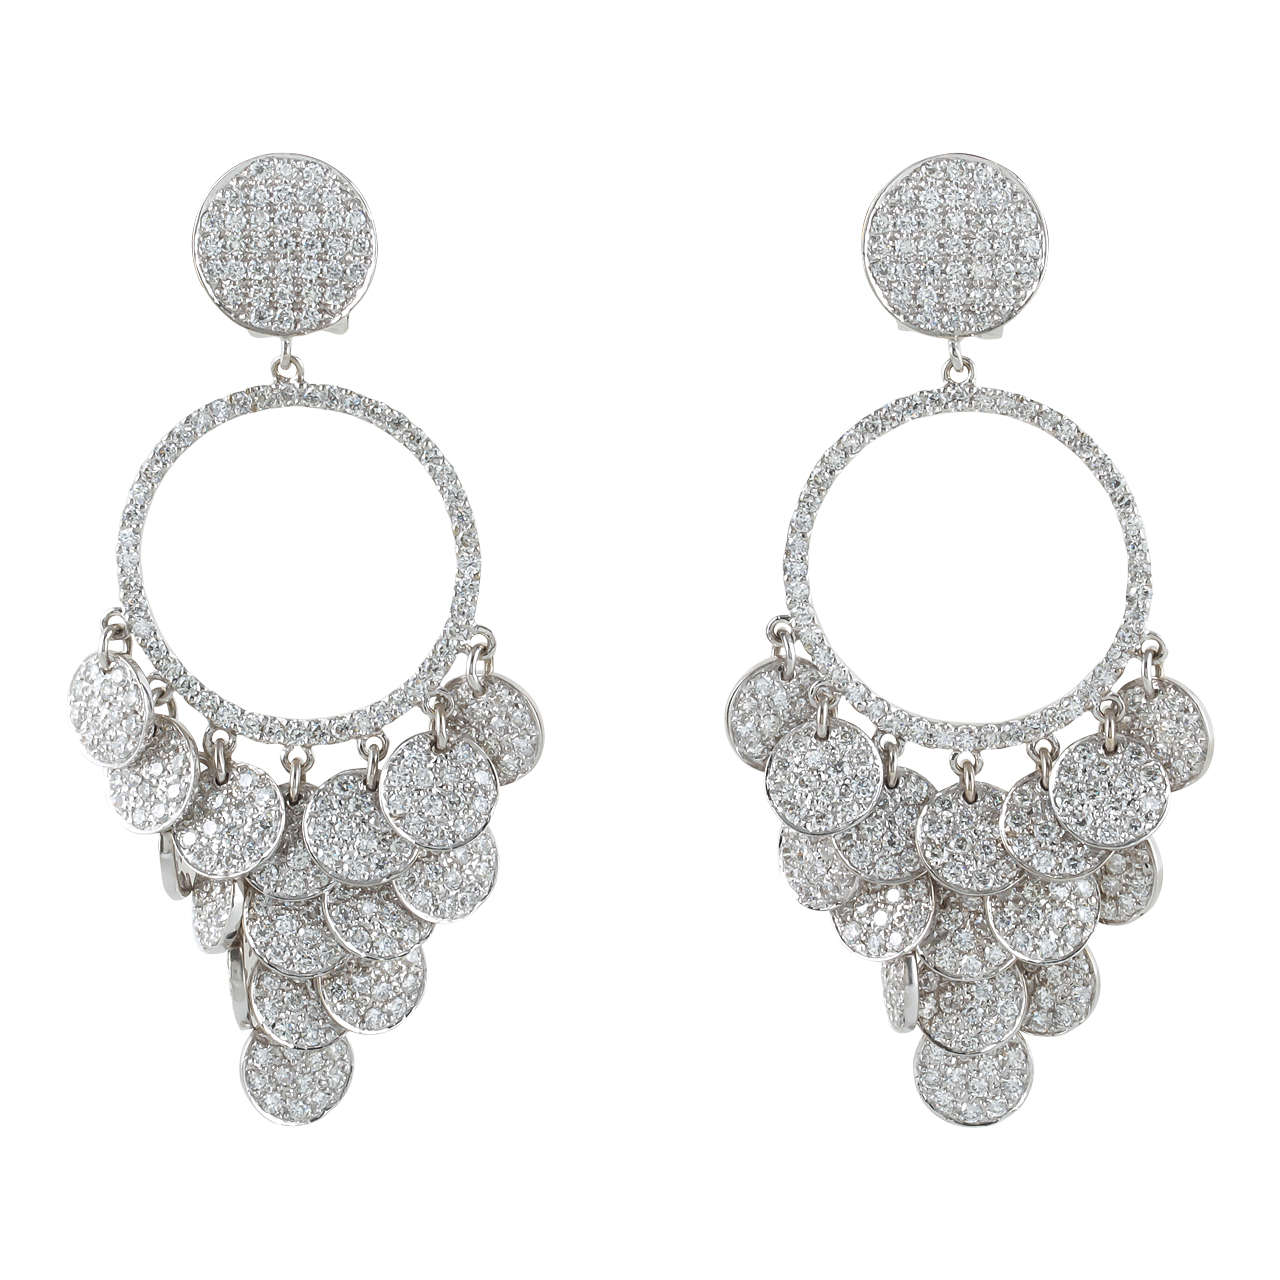 Pave Diamond Chandelier Earrings For